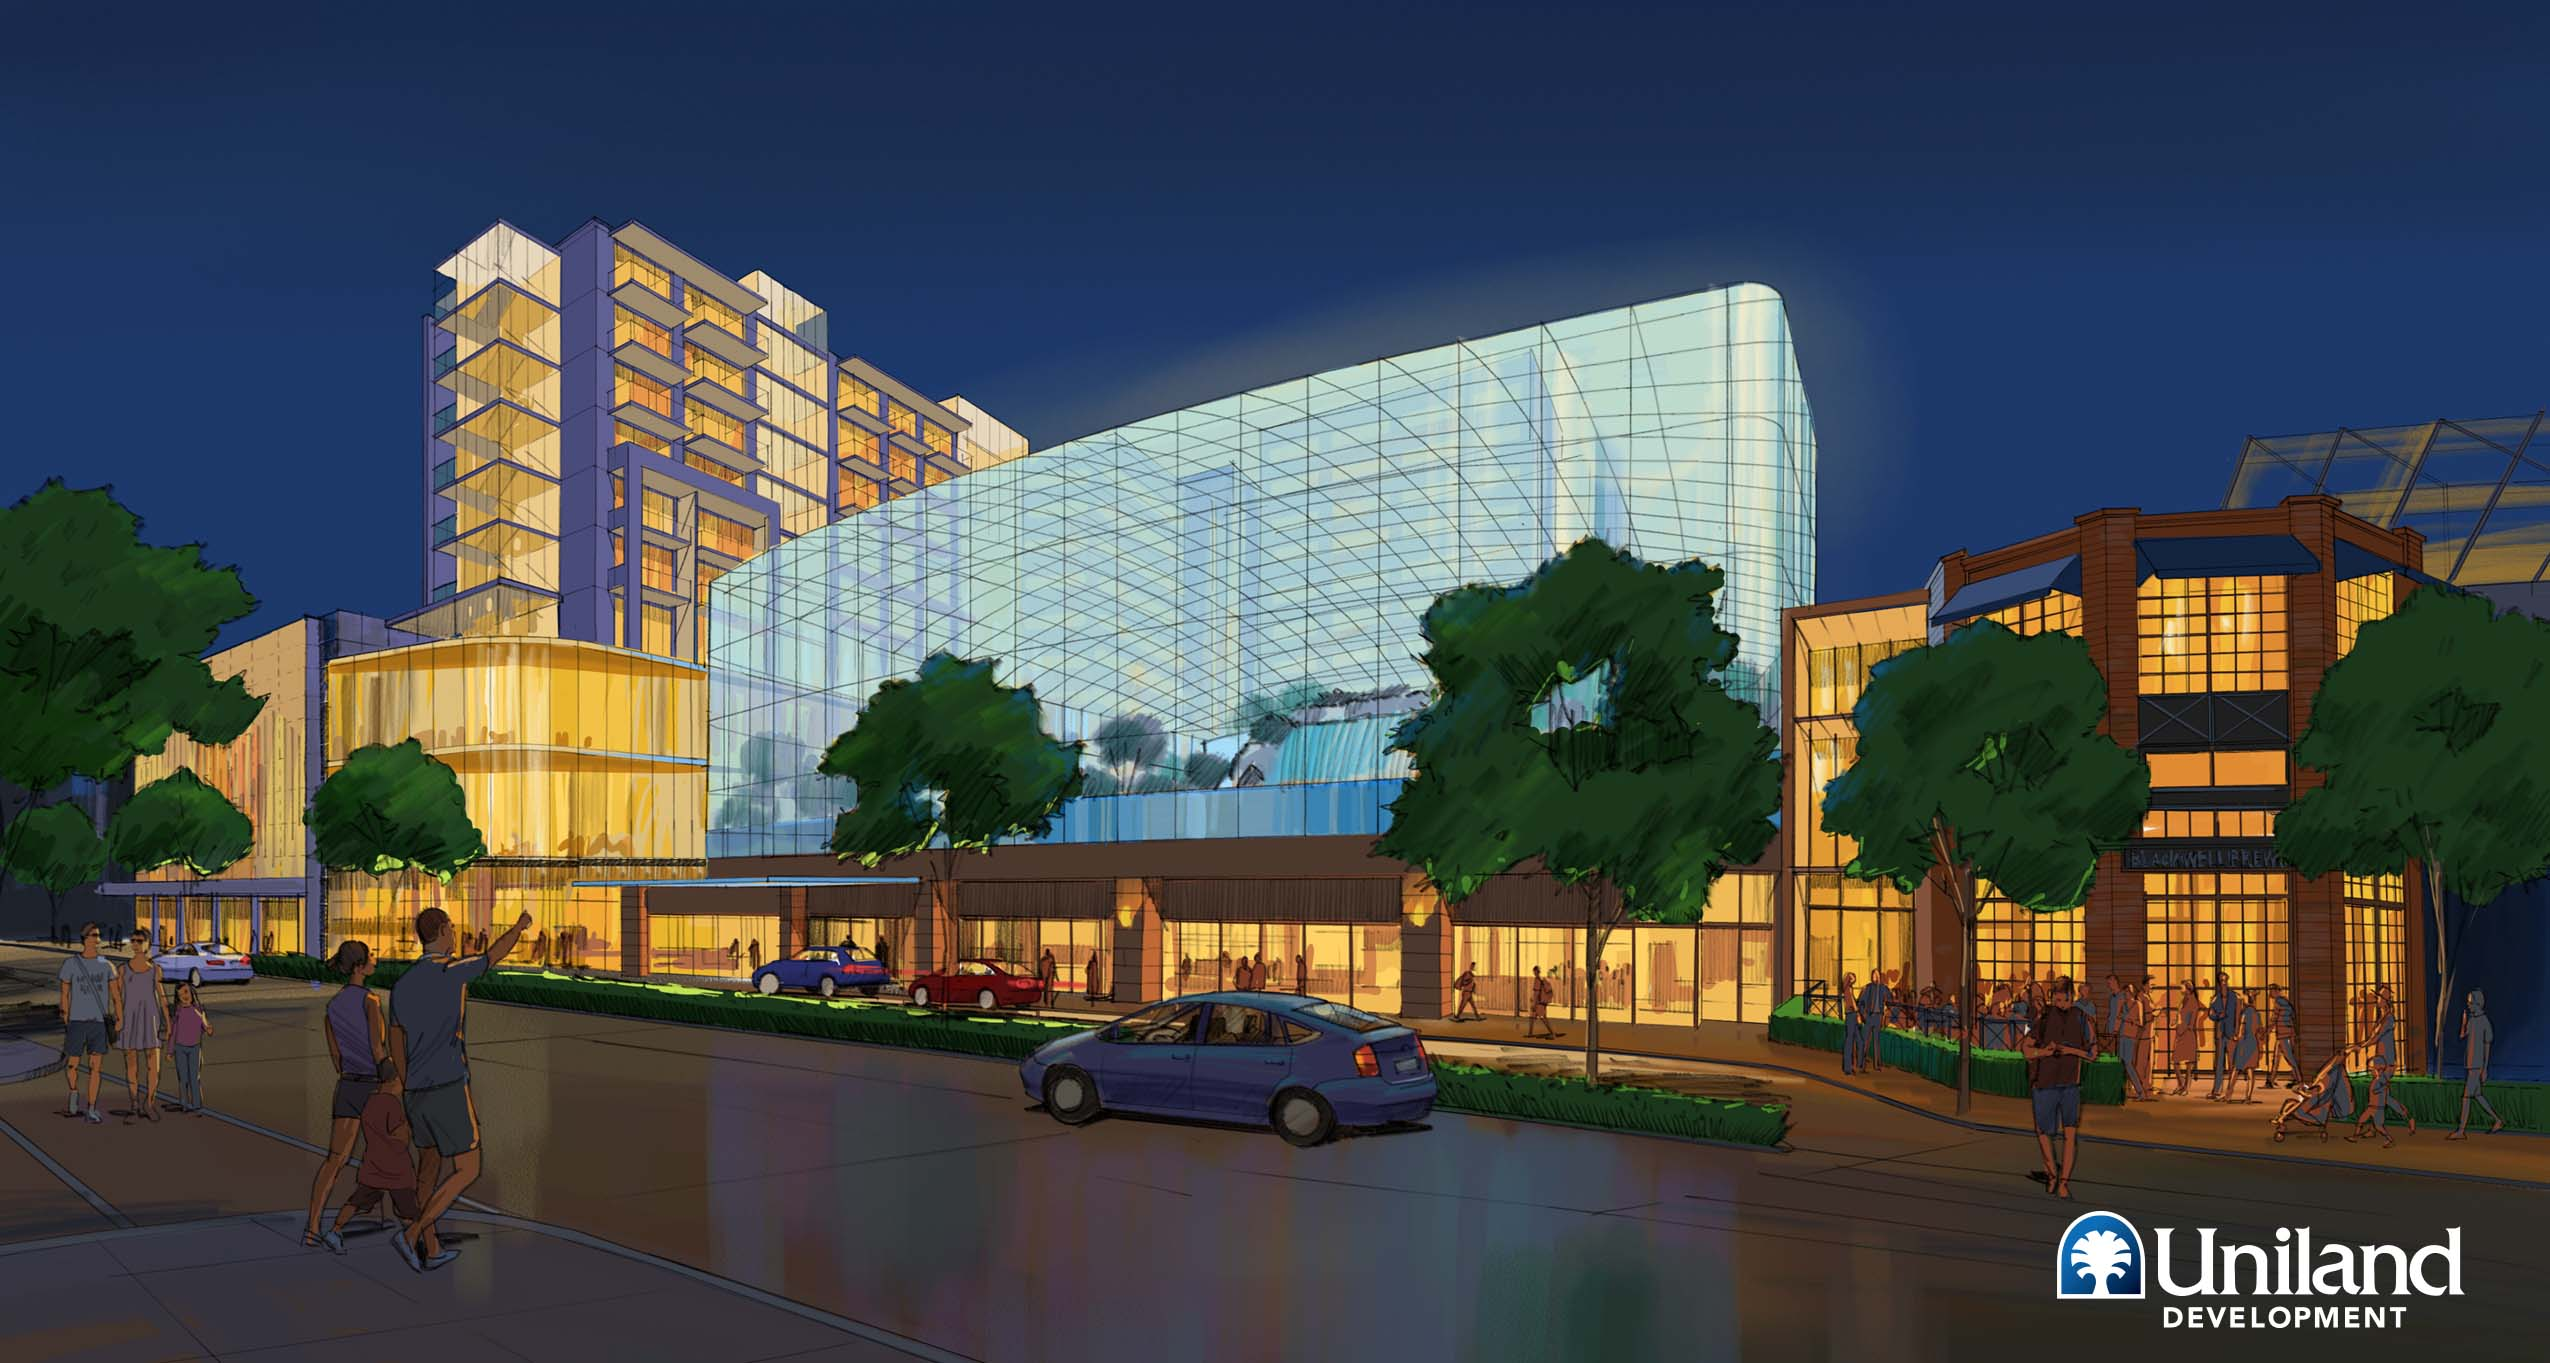 An architect's rendering of the revised Wonder Falls plan. (Courtesy Uniland Development Co.)